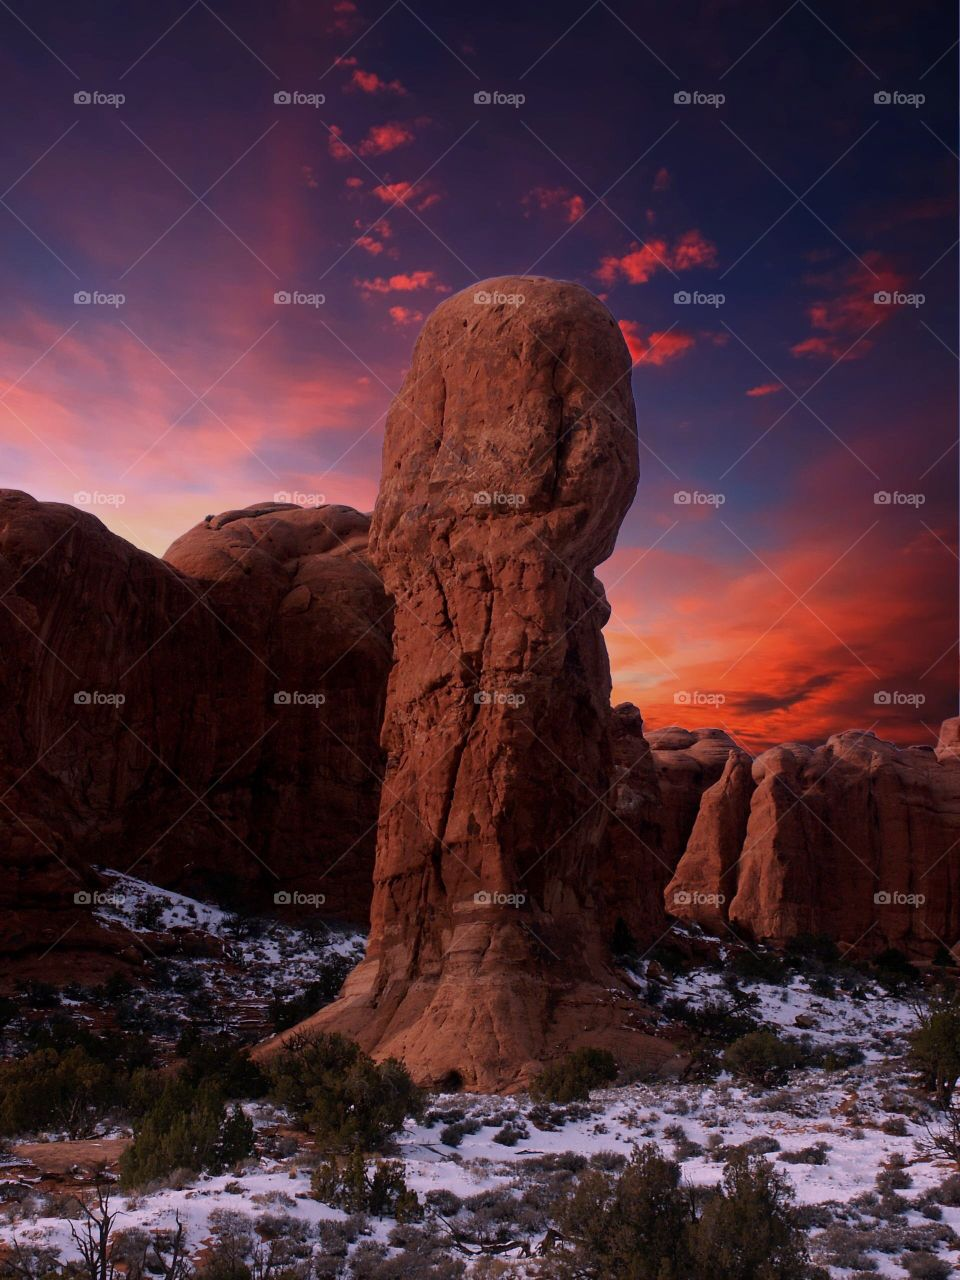 Arches National Park at sunset (USA)